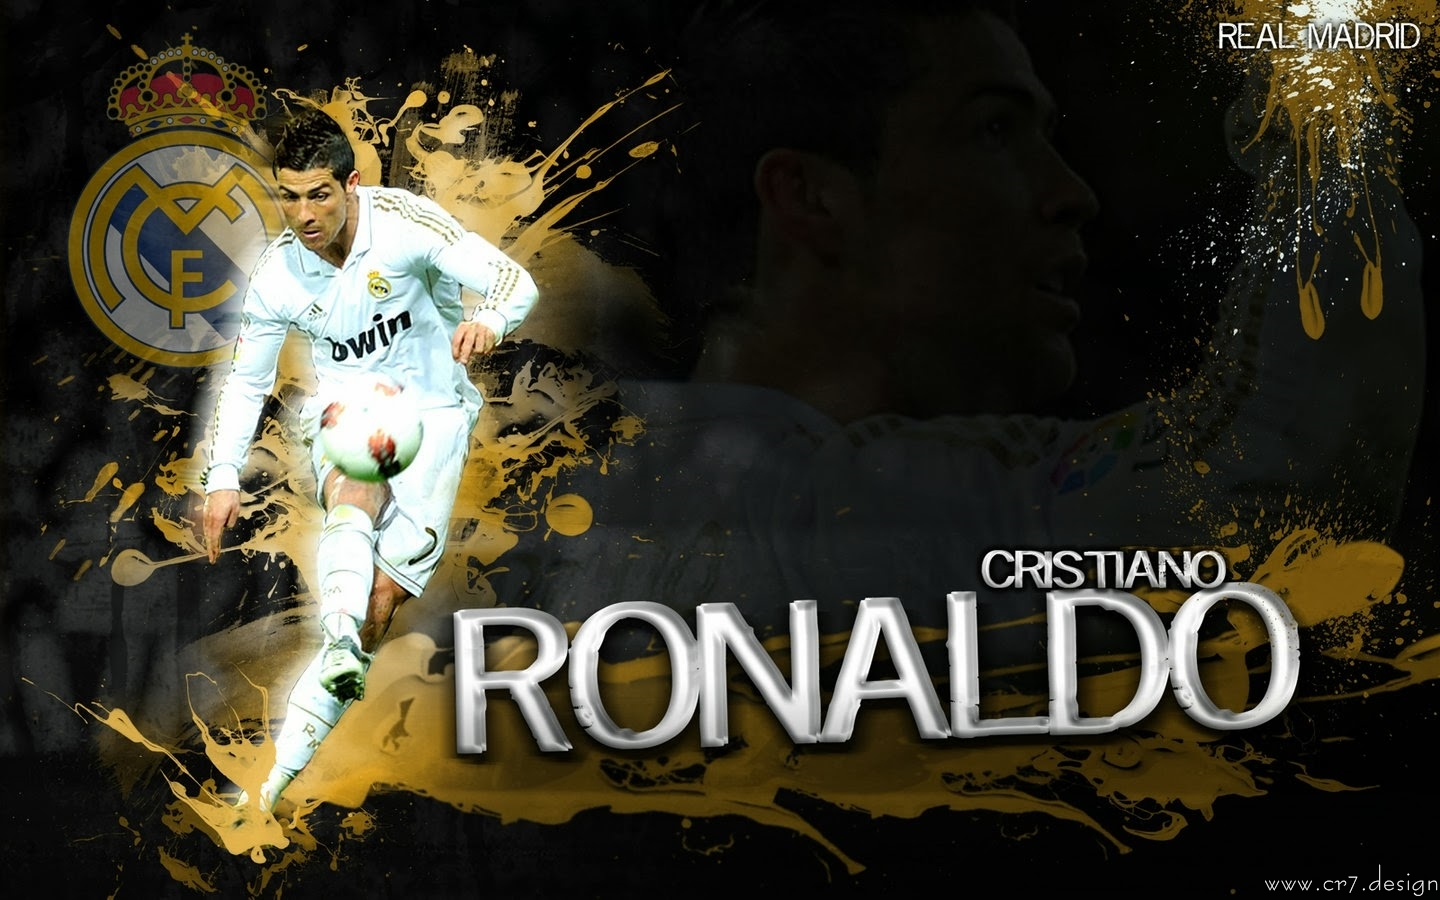 ciristiano-ronaldo-wallpaper-design-39